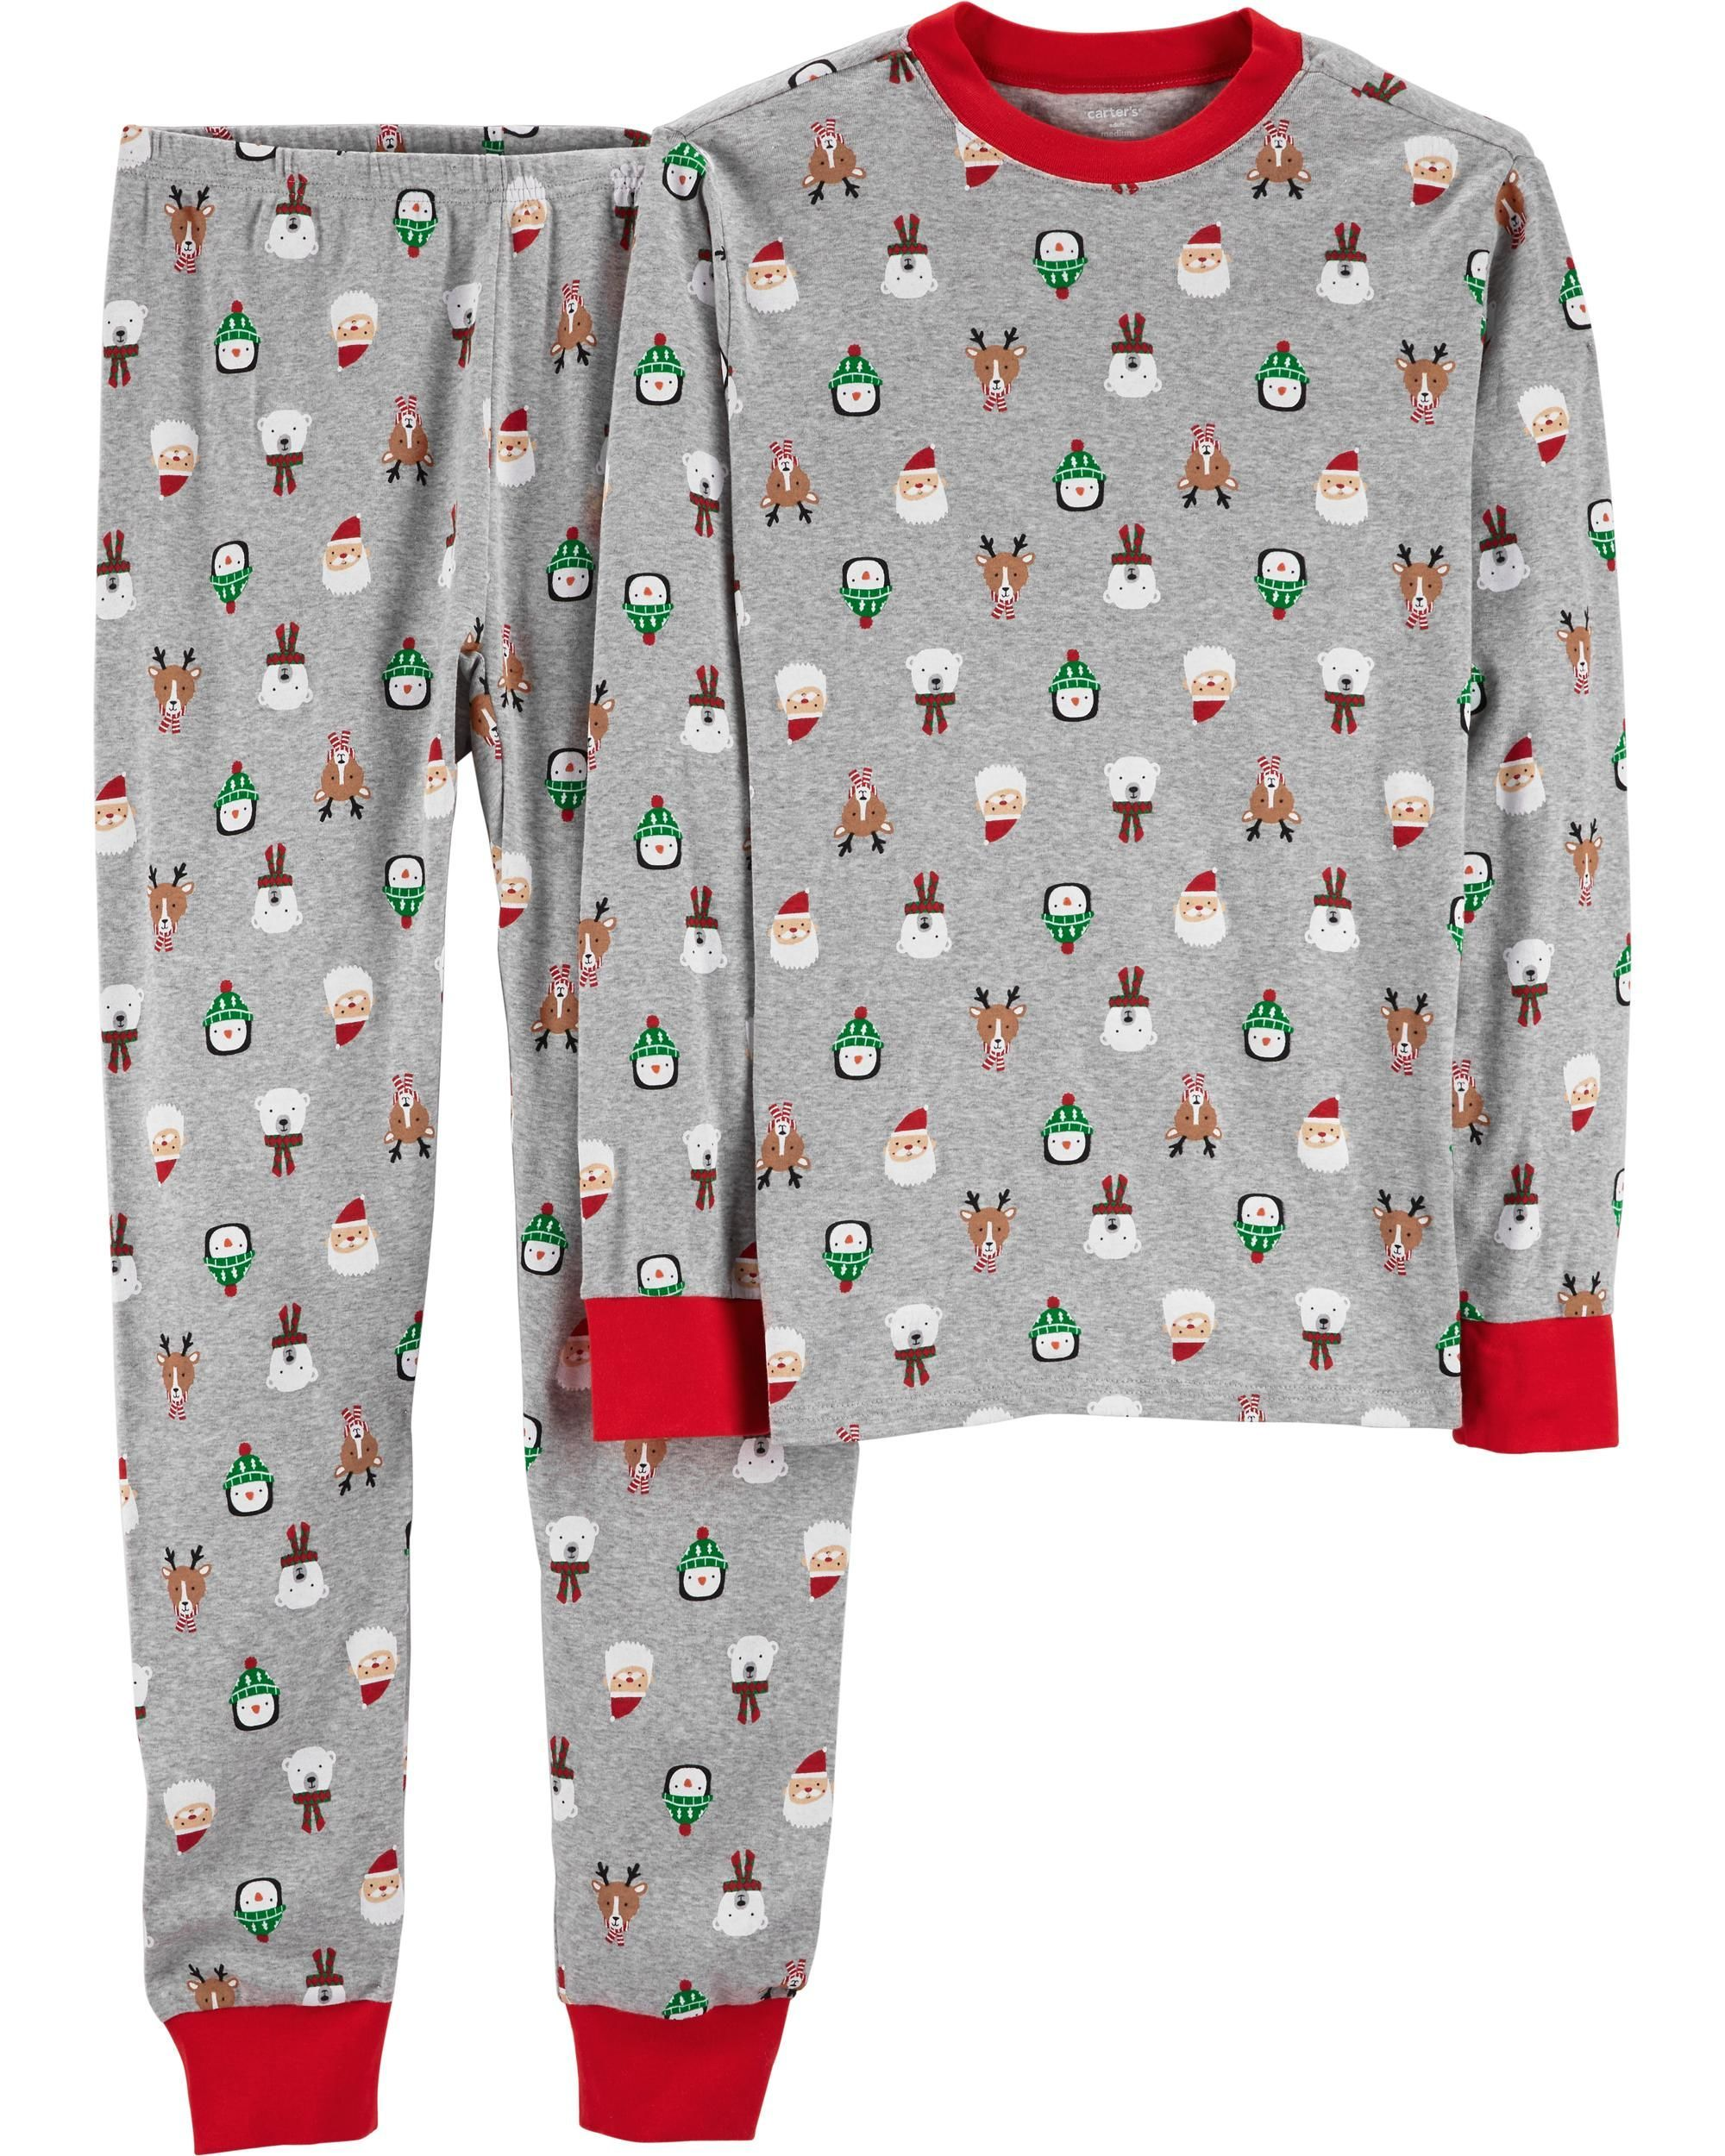 2Piece Adult Holiday Snug Fit Cotton PJs Carter's